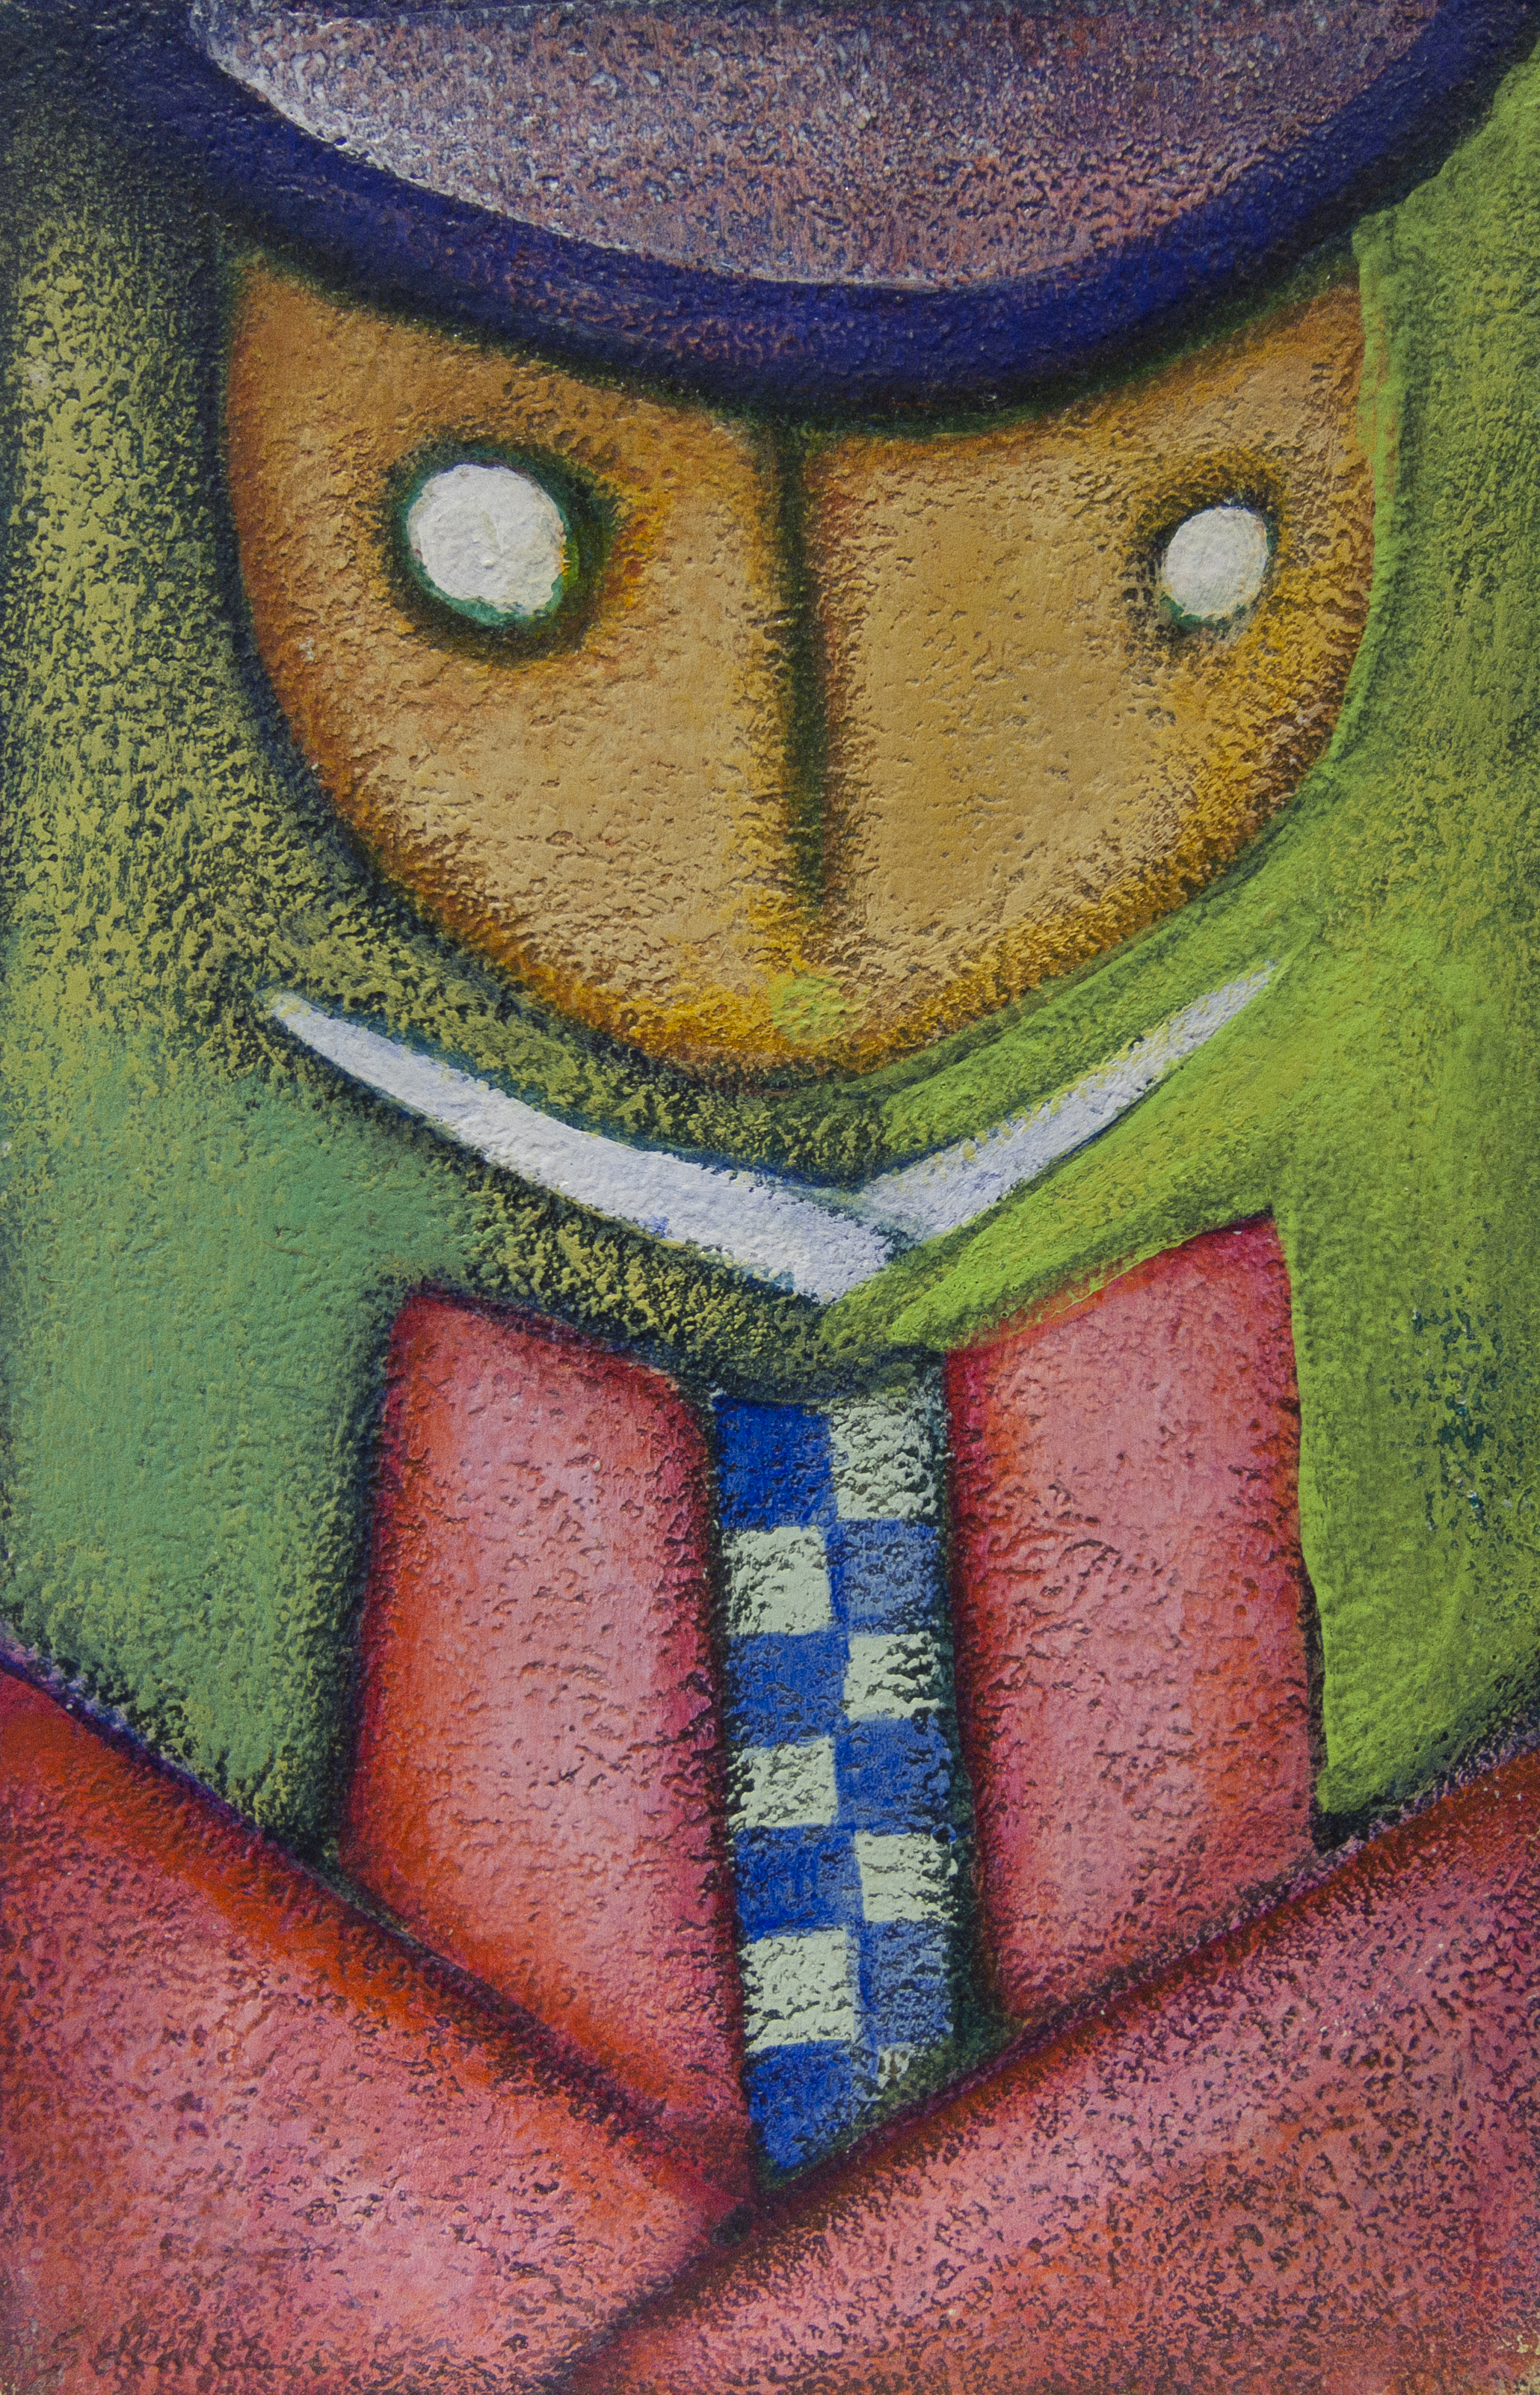 Untitled (Figure With Checkered Shirt)